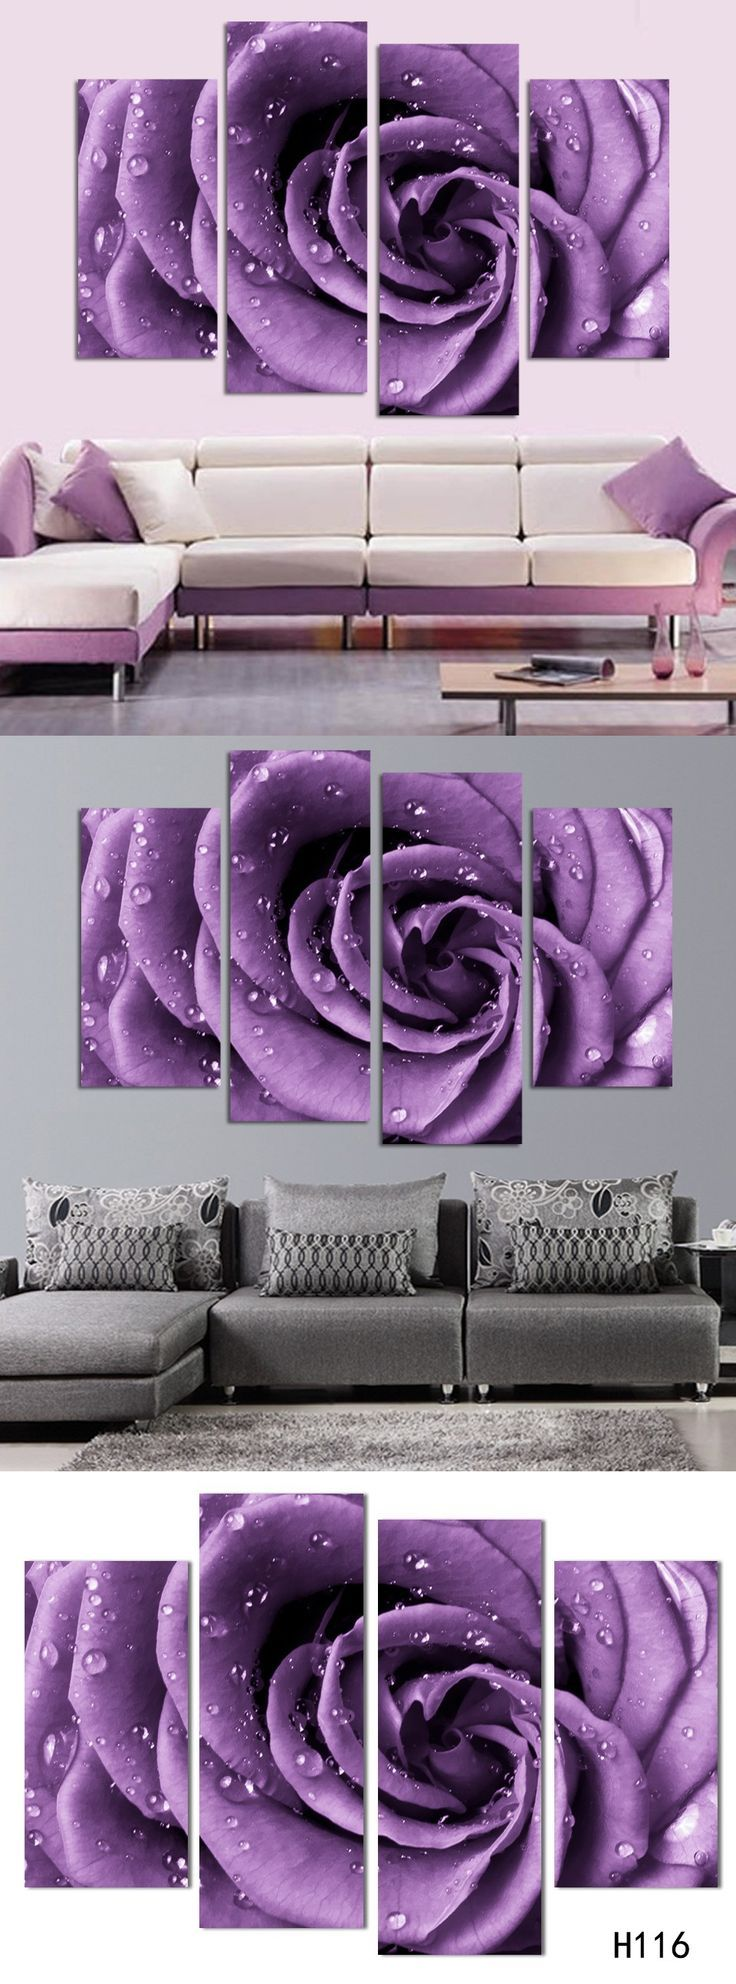 3 Piece Wall Art White Purple Lover Flower Big Perfect Canvas Wall Art On  Canvas Picture Modern Picture Home Decor